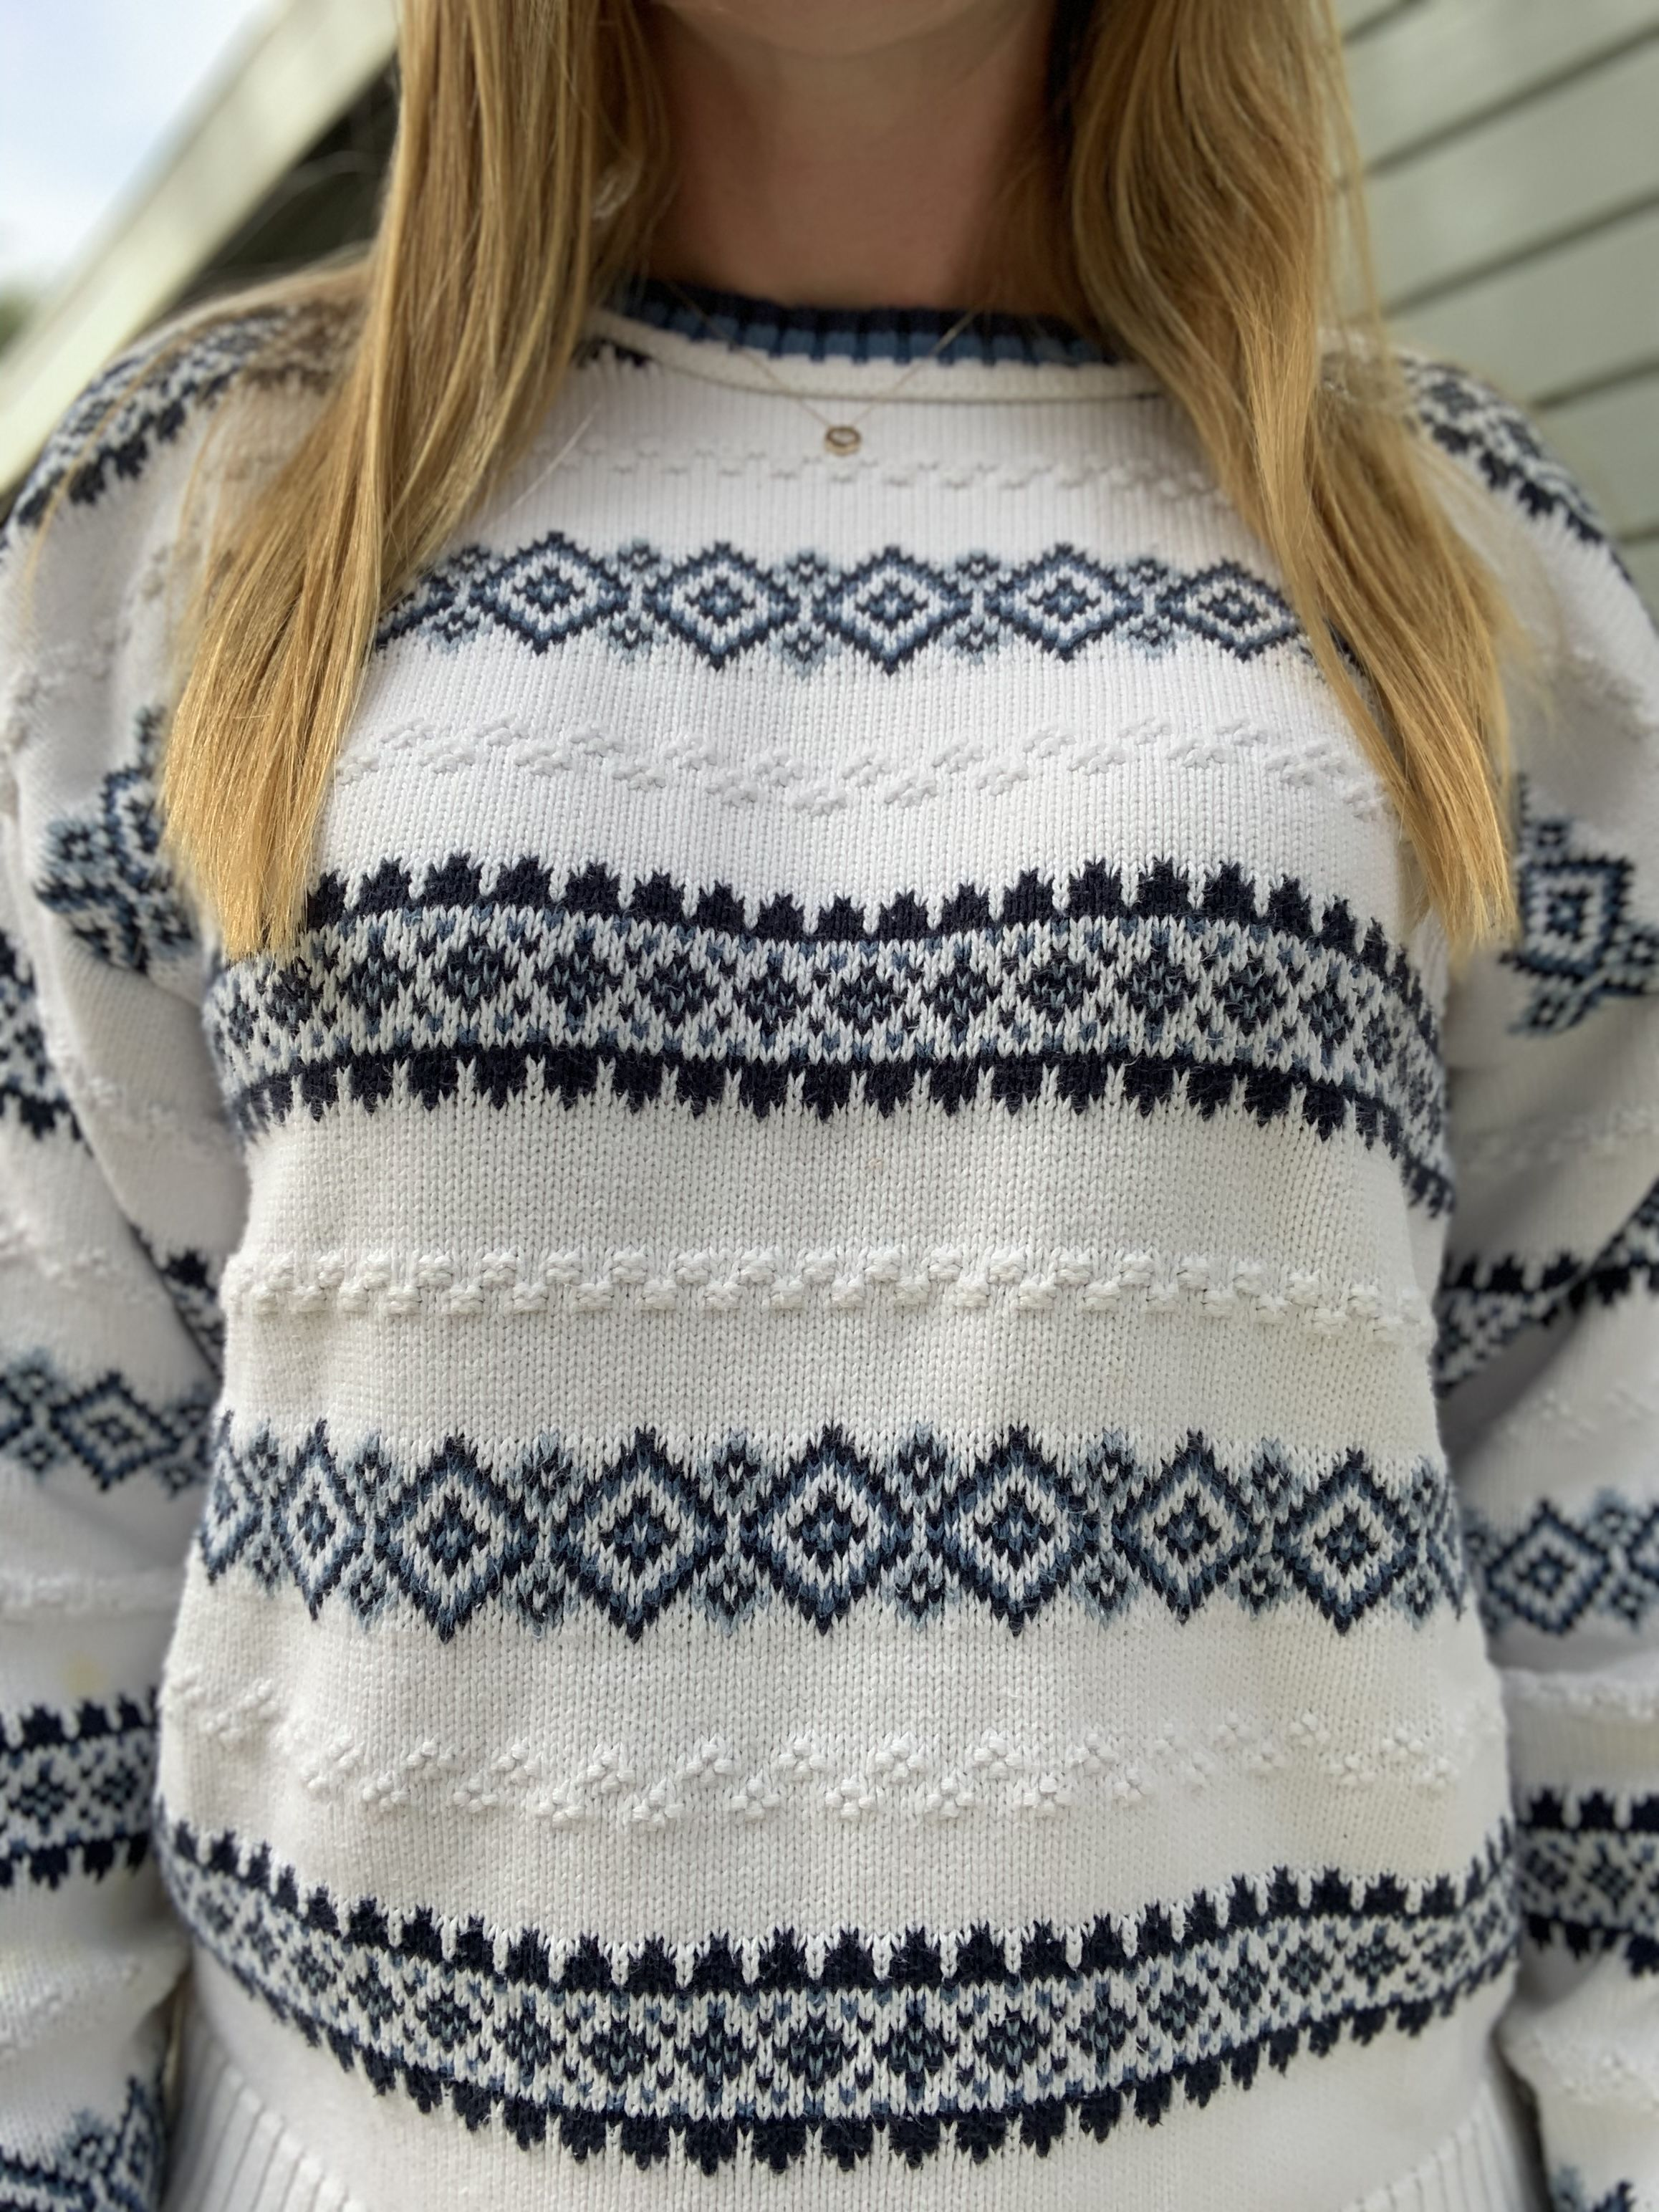 1980s Sweater  Vintage Sweater  Oversized Sweater  80s Sweater  90s Sweater  1990s Sweater  Big Sweater  Oversized Knit Sweater